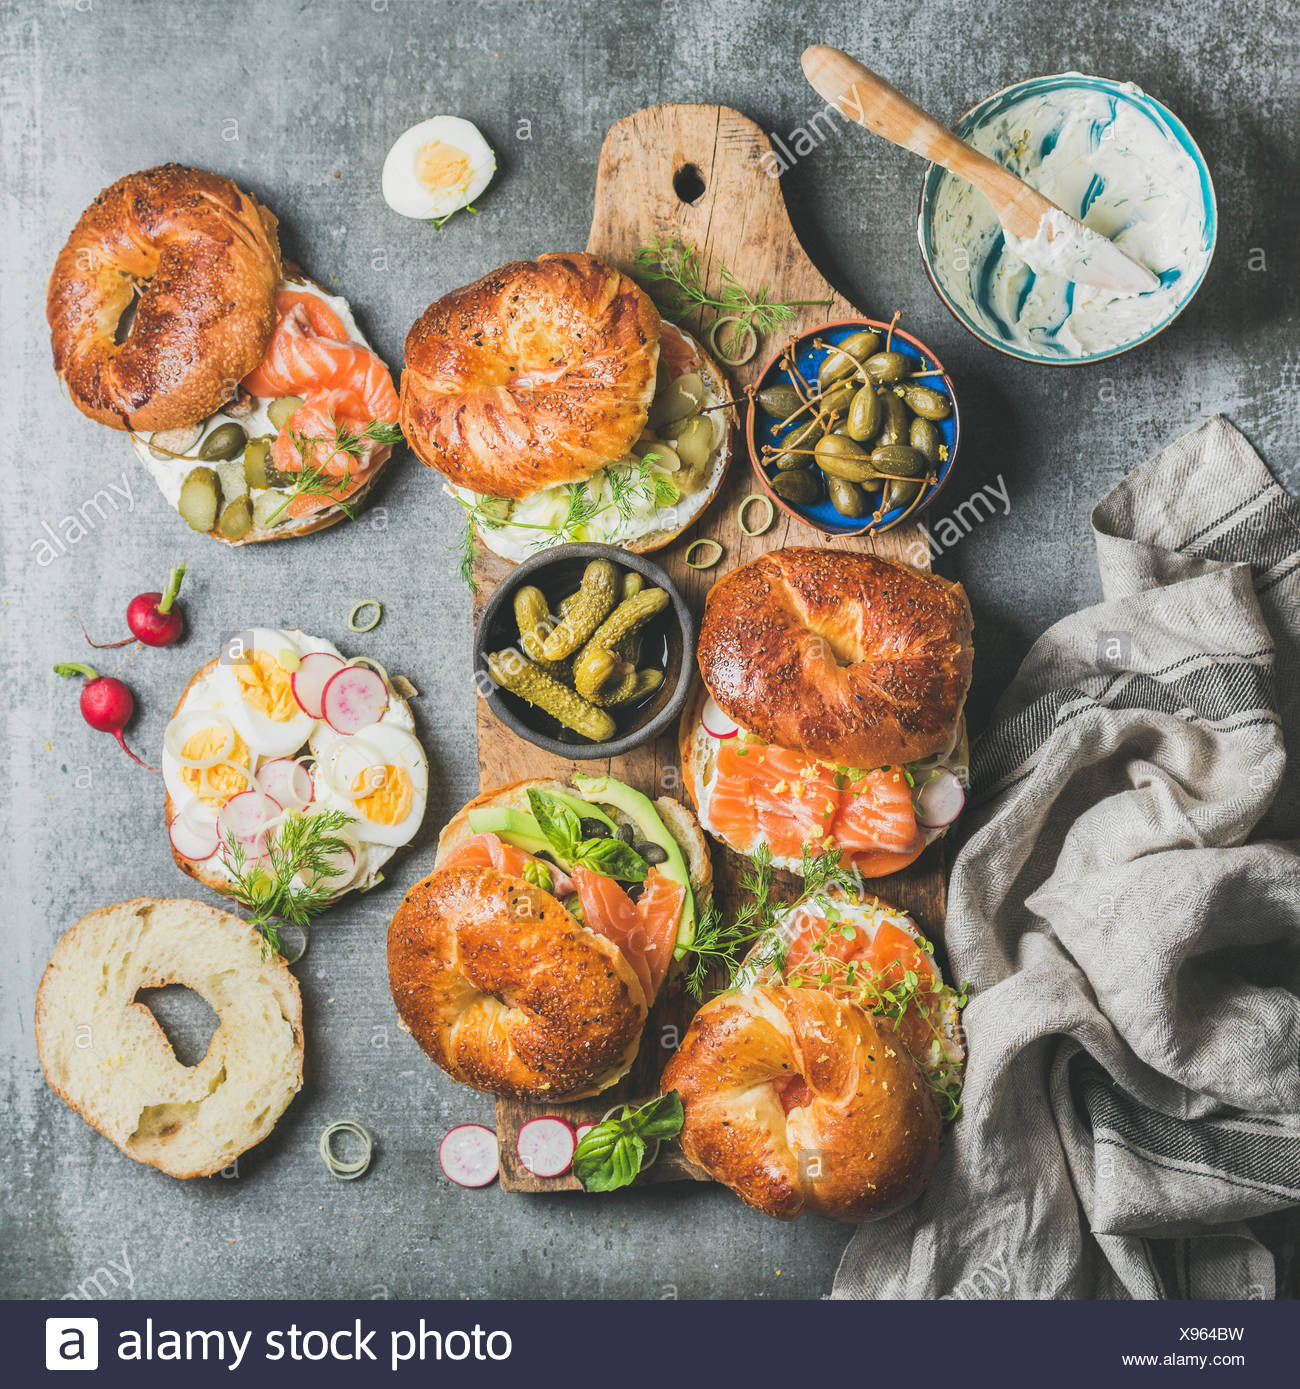 Variety of bagels with smoked salmon, eggs, radish, avocado, cucumber, greens and cream cheese in bowl for breakfast, lunch, party or takeaway on wood - Stock Image